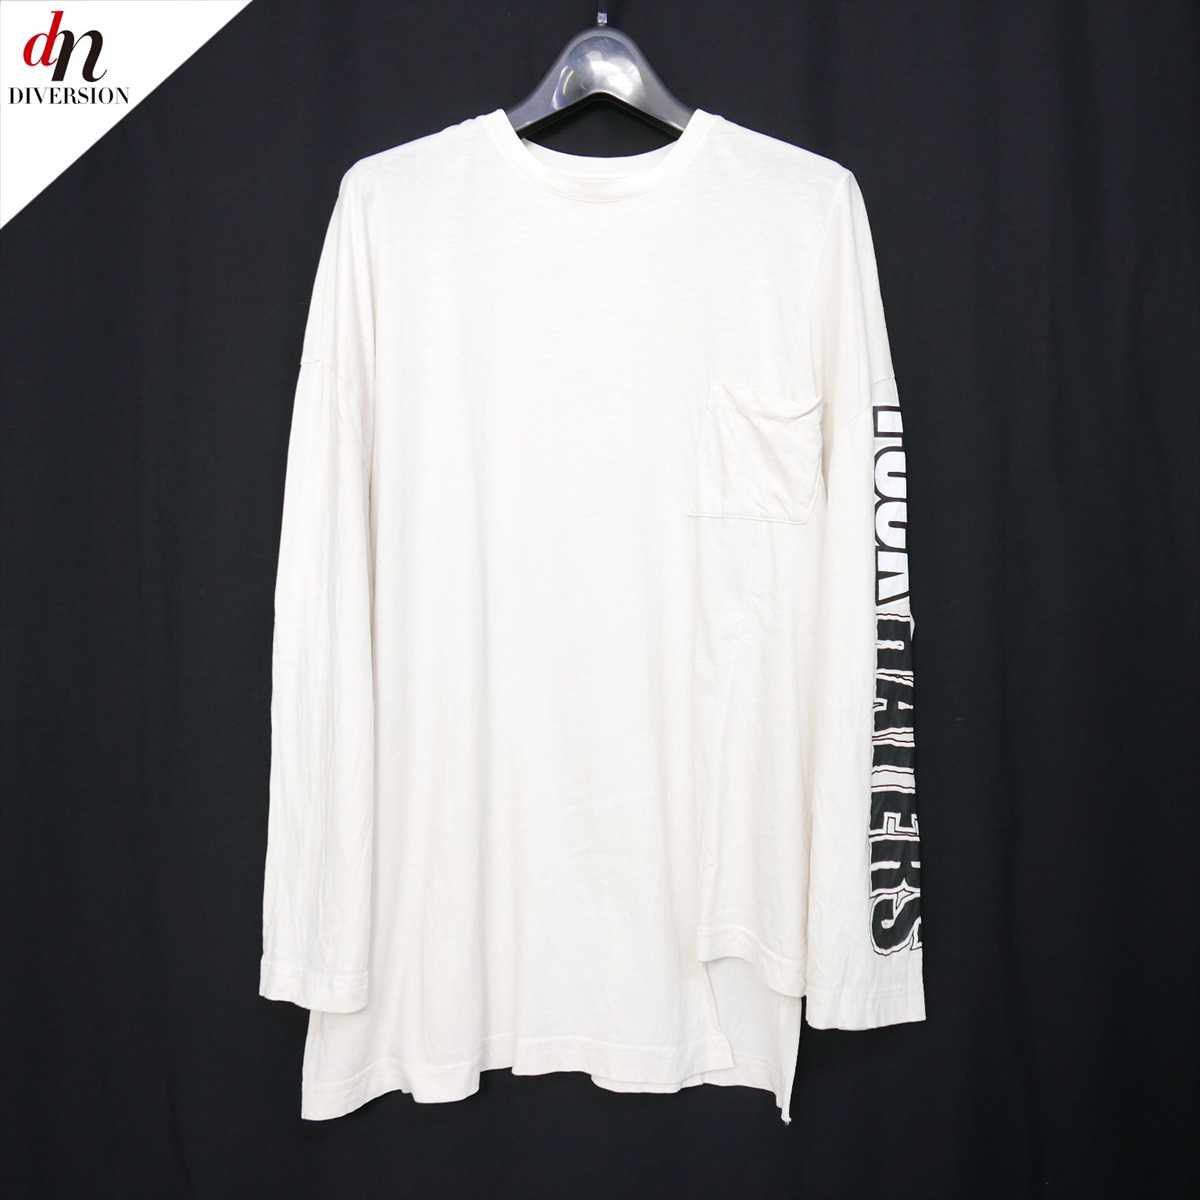 WILLY CHAVARRIA ウィリーキャバリエ LS PANEL TEE ロングスリーズ Tシャツ FUCK HATERS プリント アシンメトリー クルーネック MATERIAL S 【中古】 DN-9288